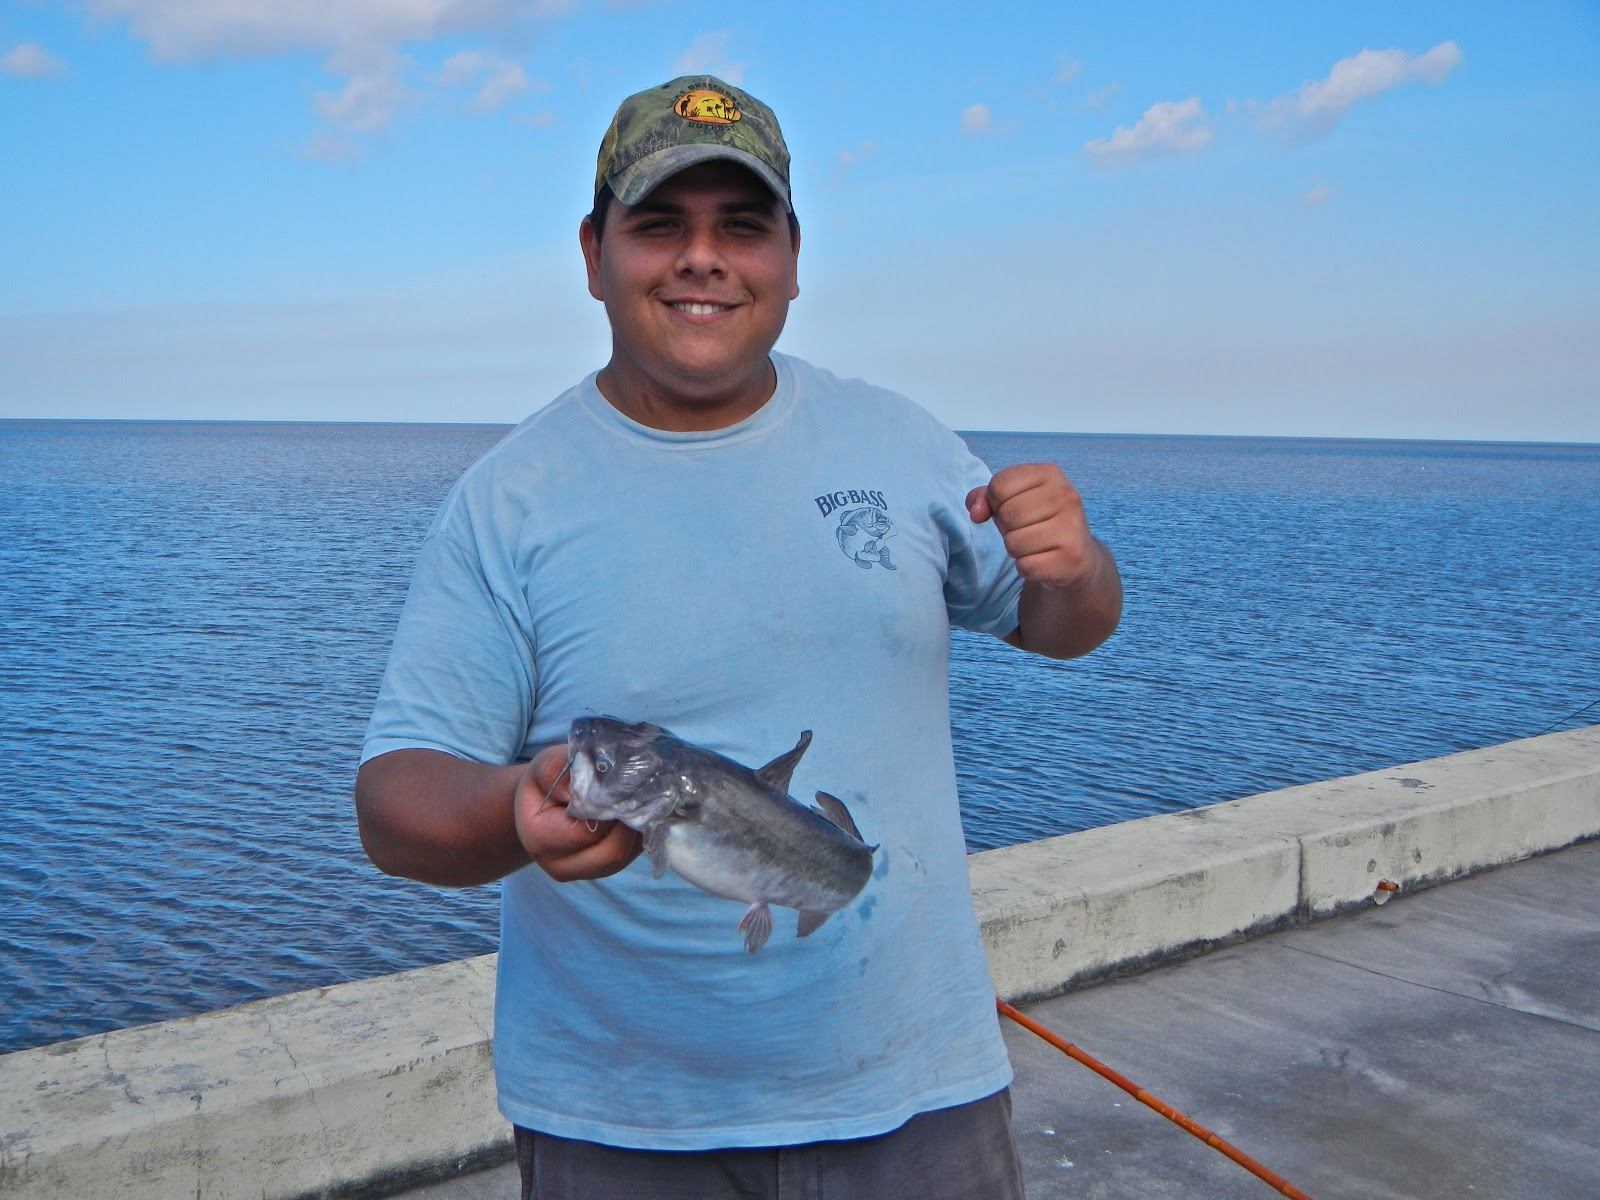 Florida fishing academy lake okeechobee fishing feb 2013 for Lake okeechobee fishing guides